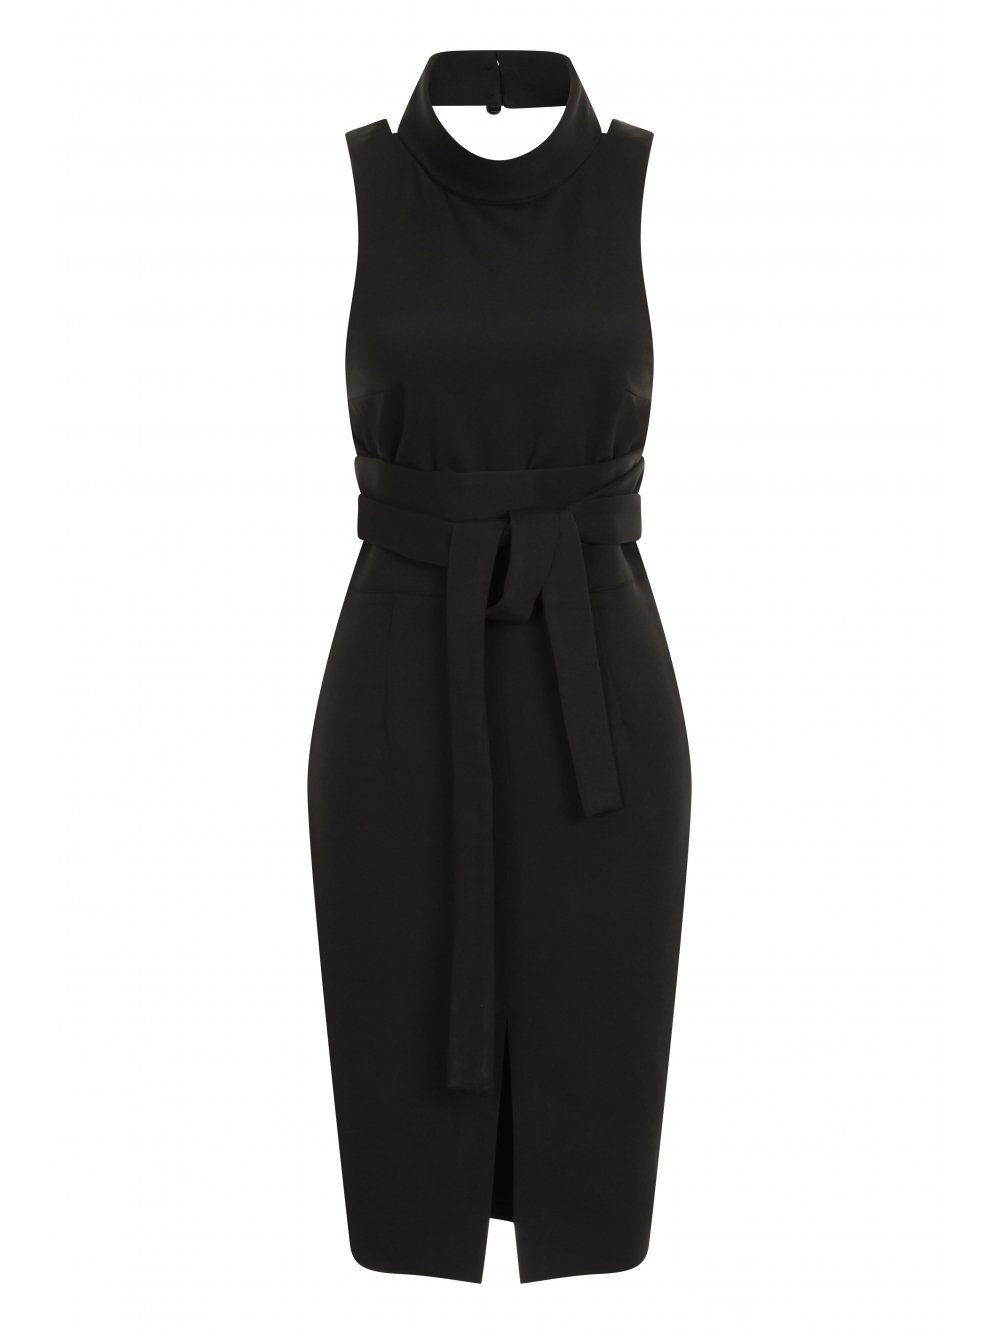 Black Cross Strap Tie Detail High Neck Midi Dress